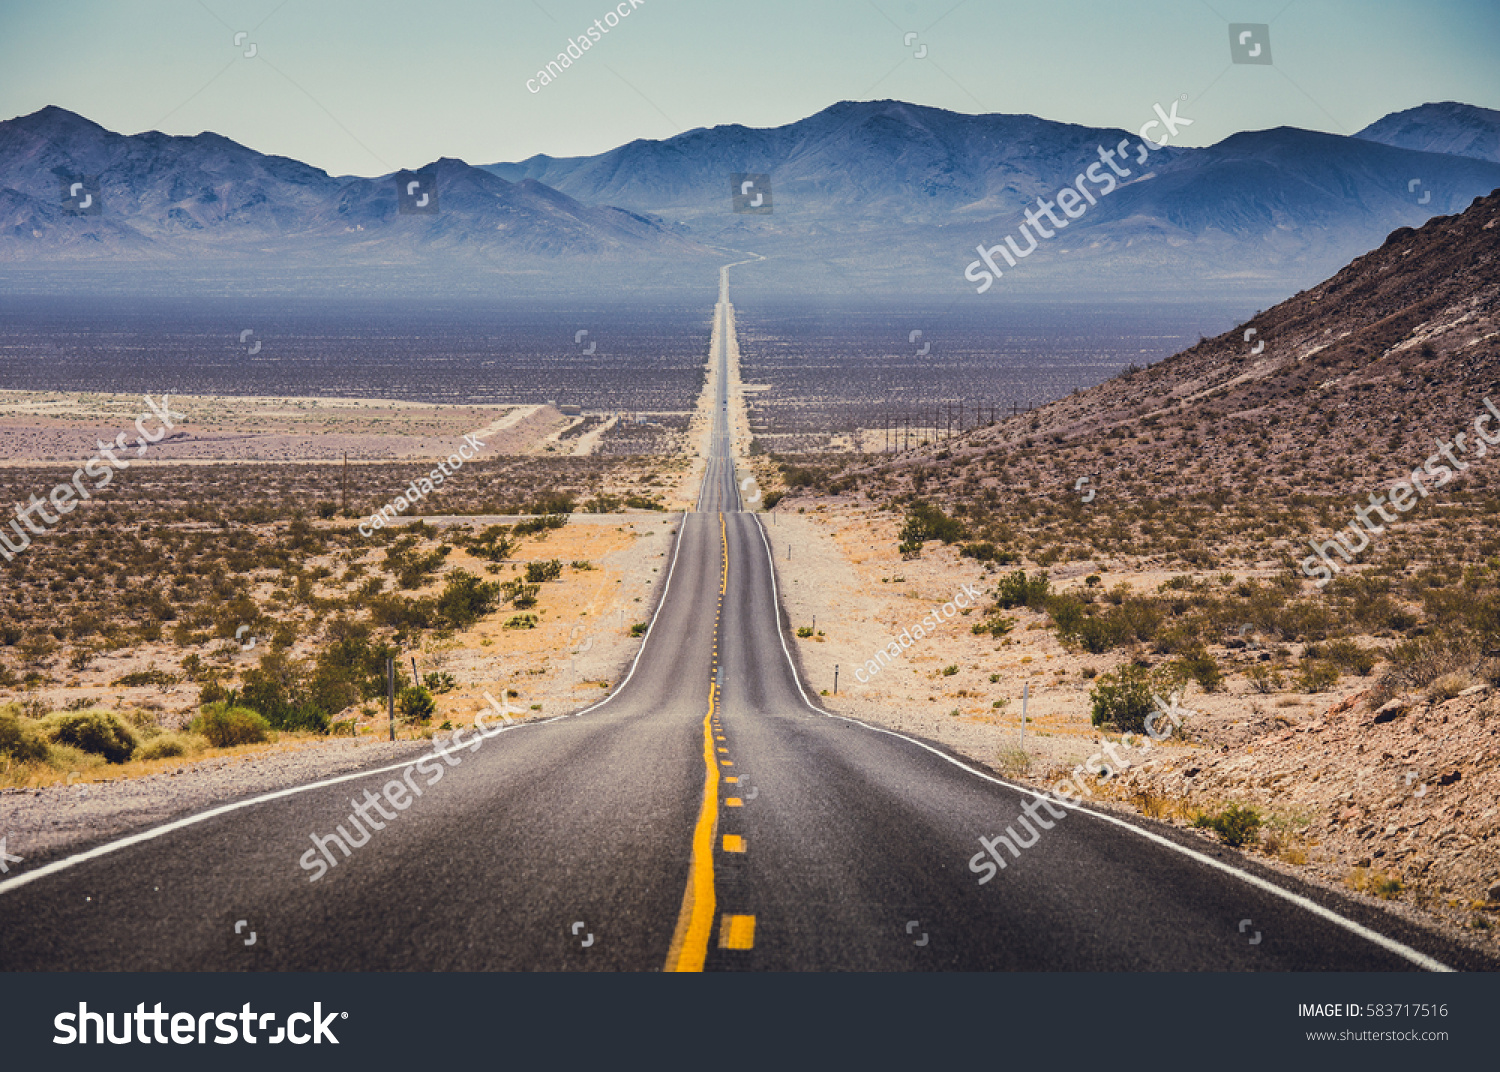 Classic panorama view of an endless straight road running through the barren scenery of the American Southwest with extreme heat haze on a beautiful hot sunny day with blue sky in summer #583717516